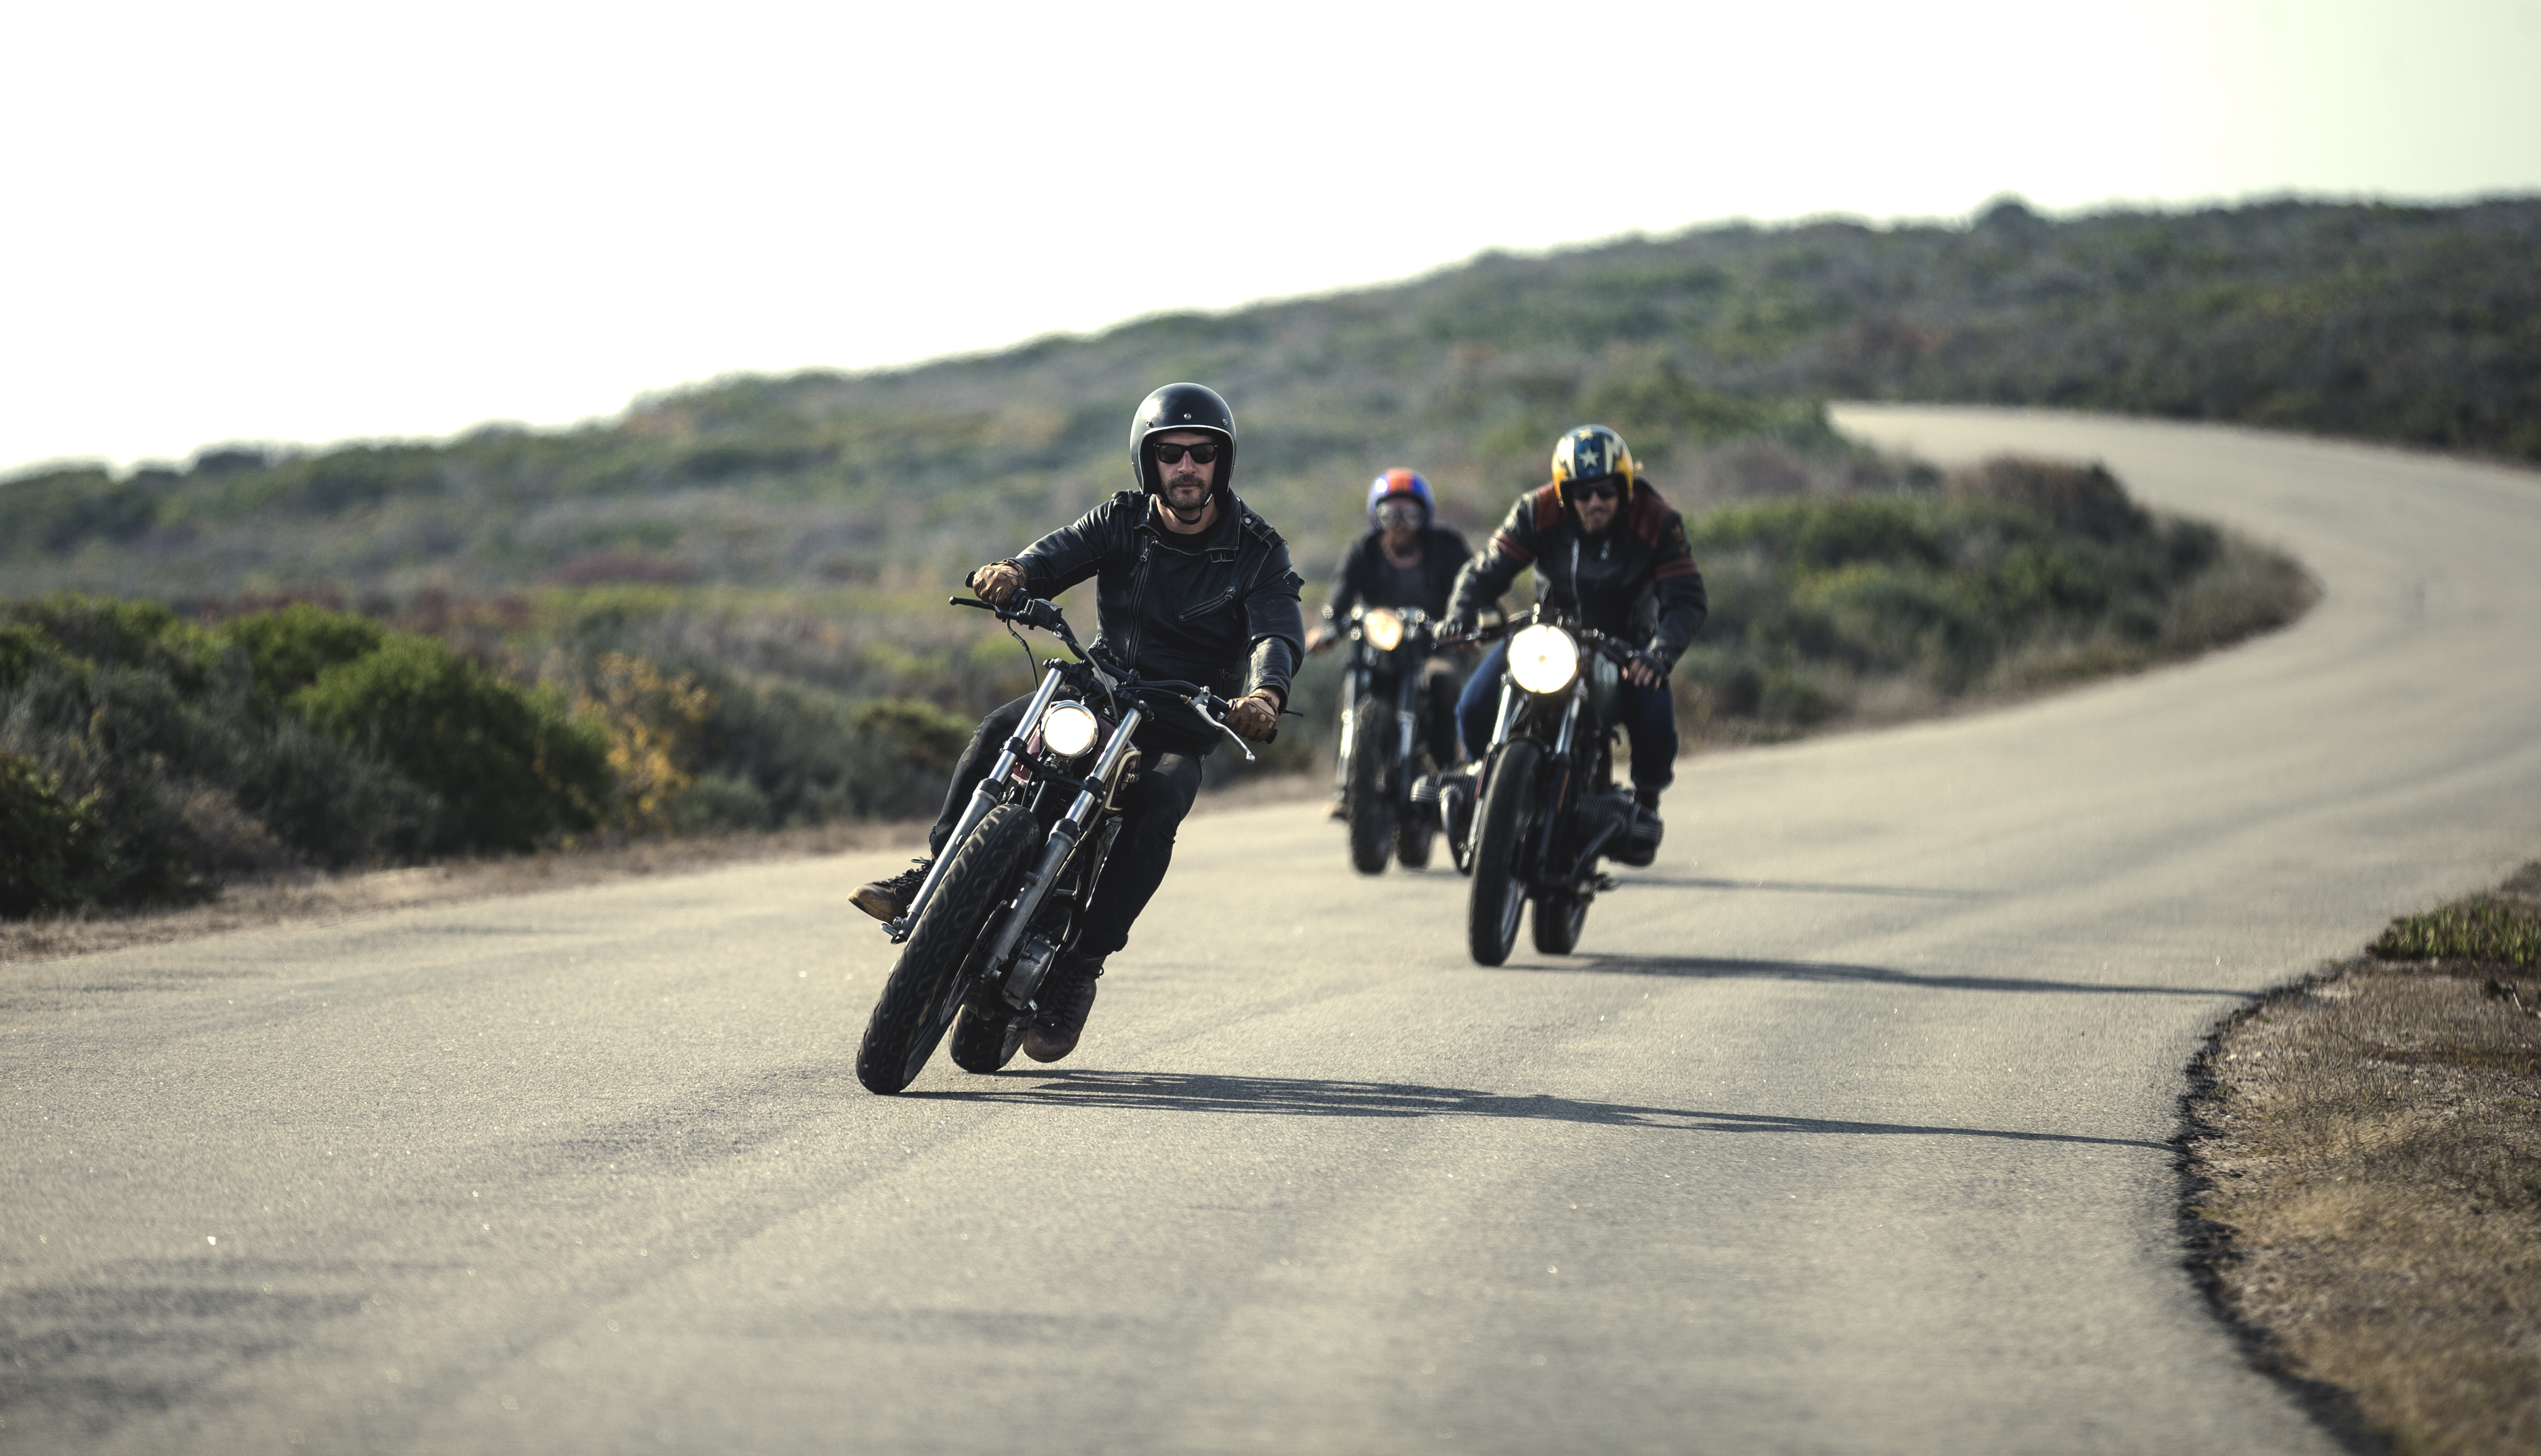 Capital One Motorcycle Loans >> Can You Buy A New Motorcycle With A Credit Card Pocketsense